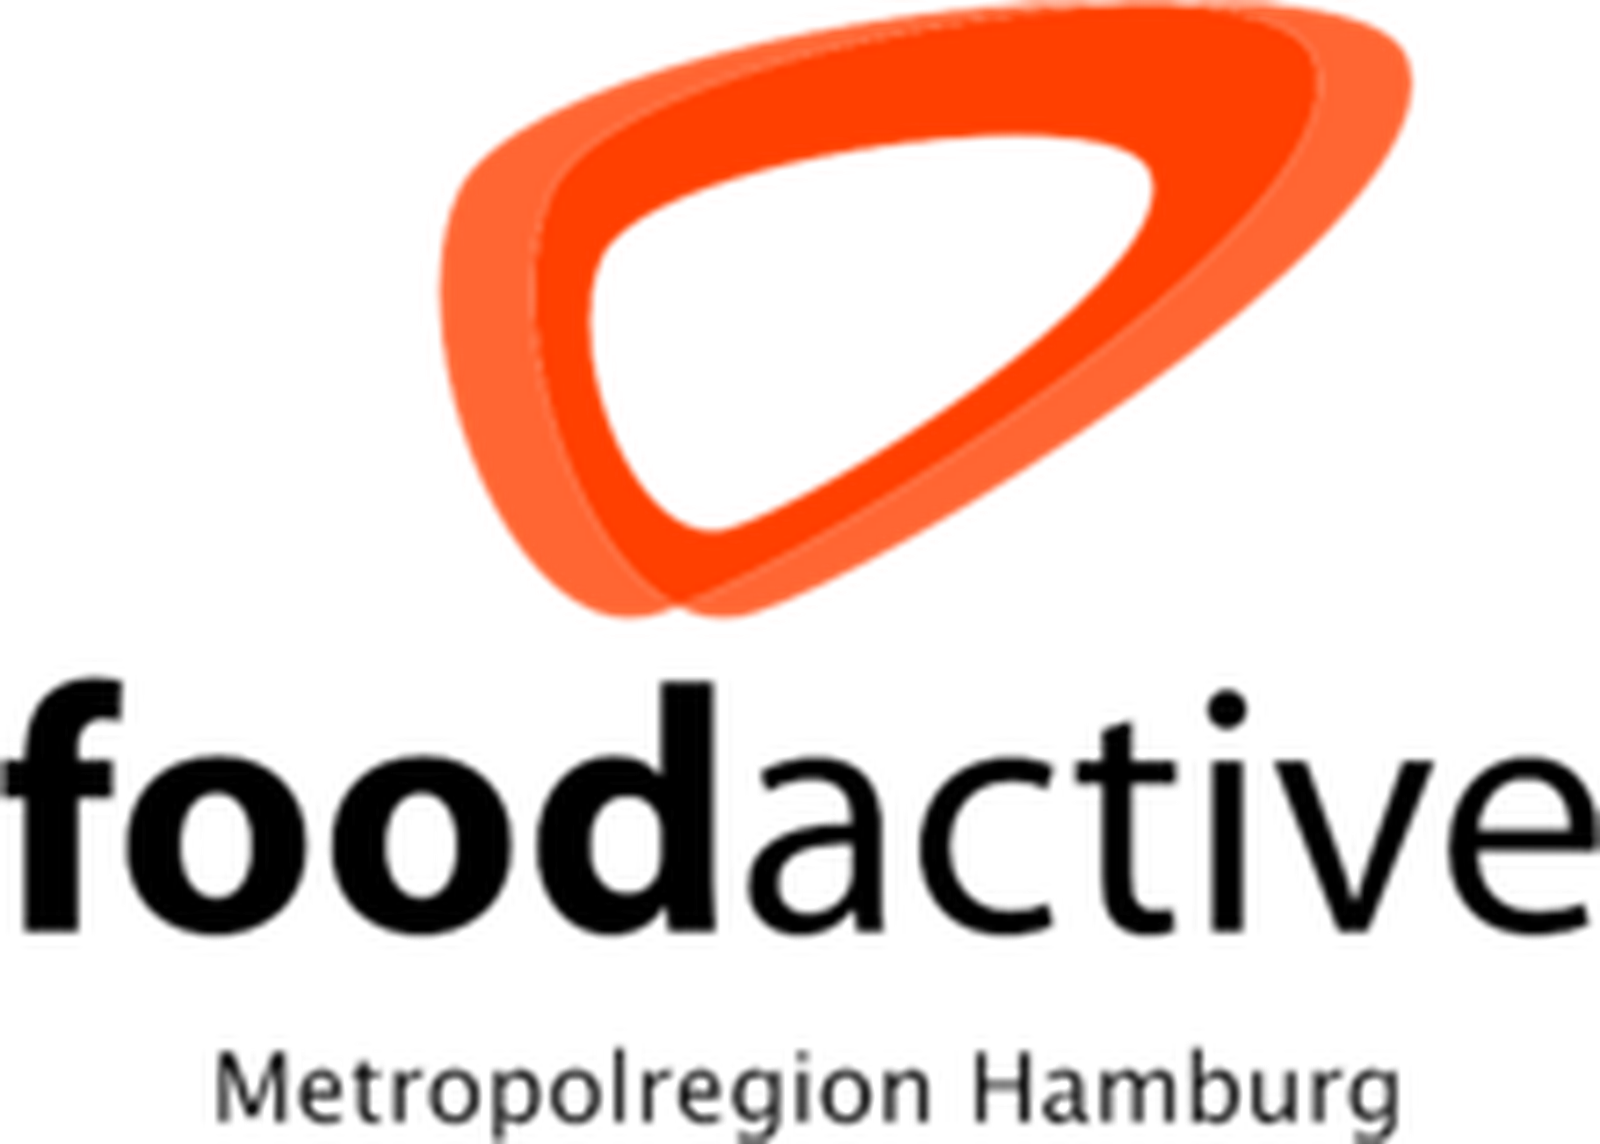 Die GBA Group ist nun Mitglied bei foodactive e.V.